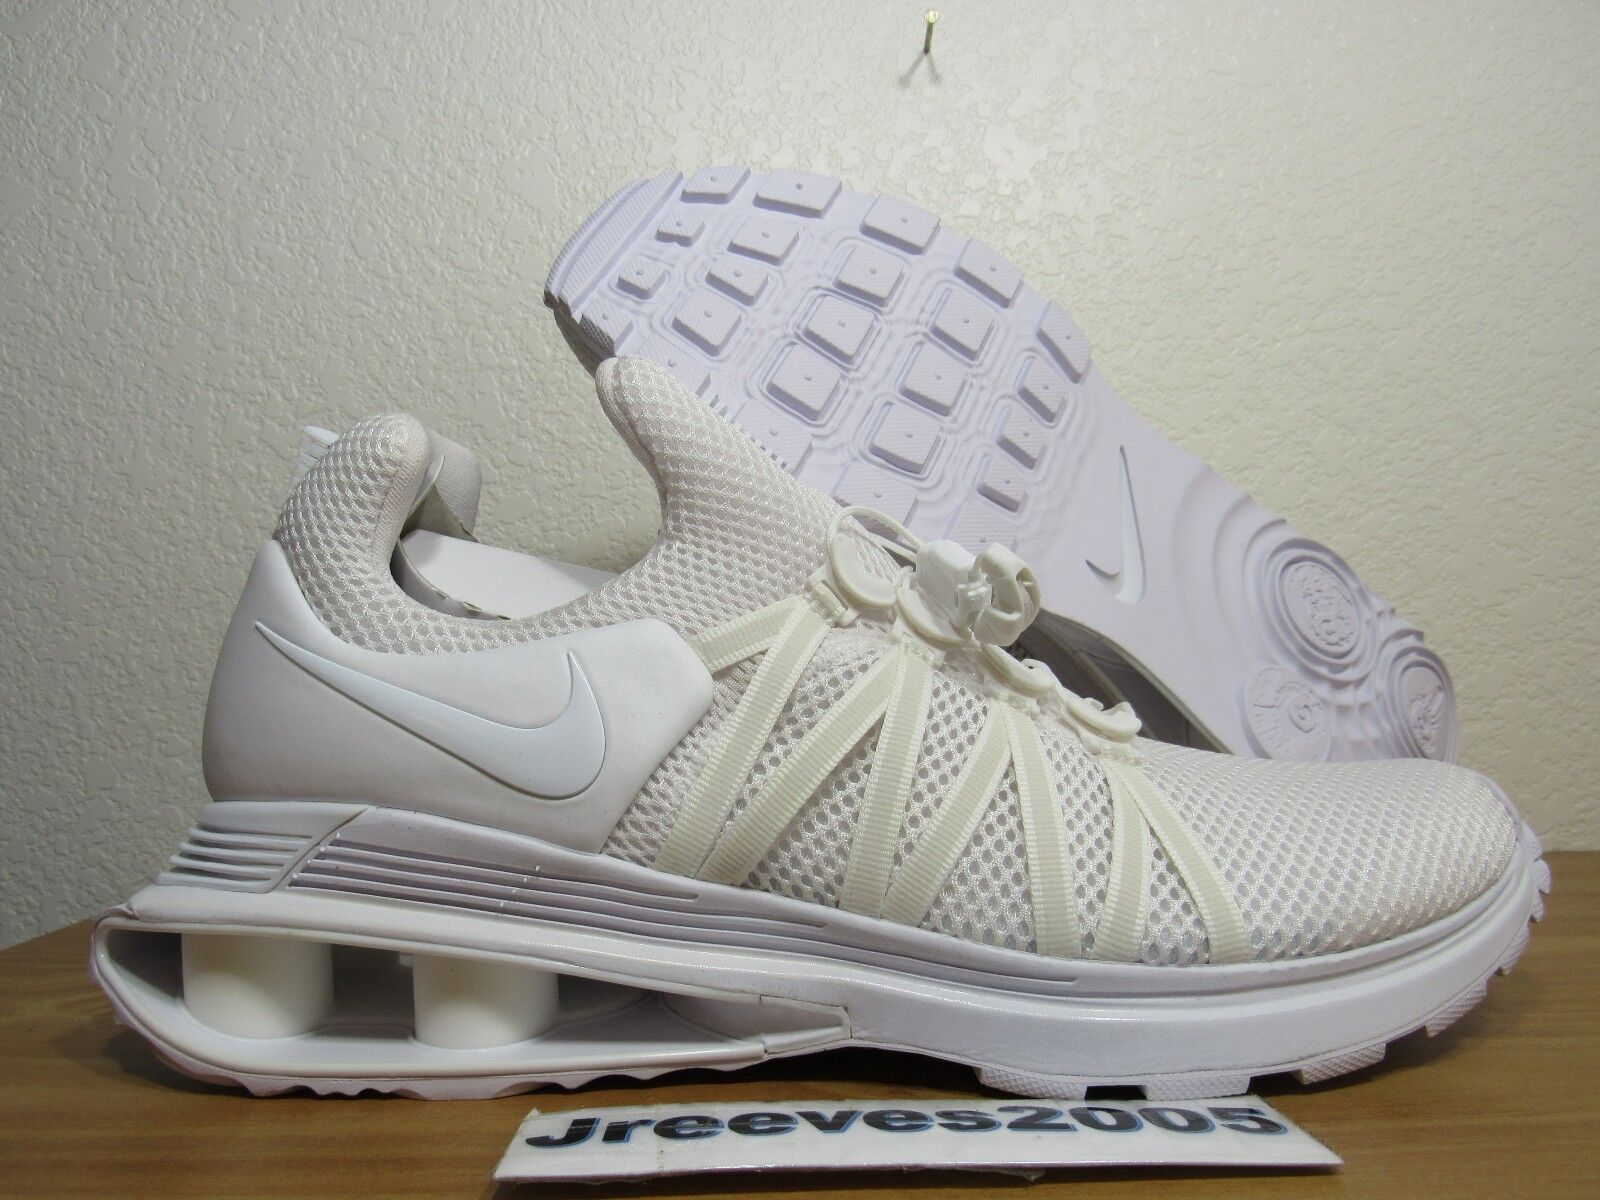 DS Nike Shox Gravity Sz 10 100% Authentic TRIPLE WHITE AR1999 100